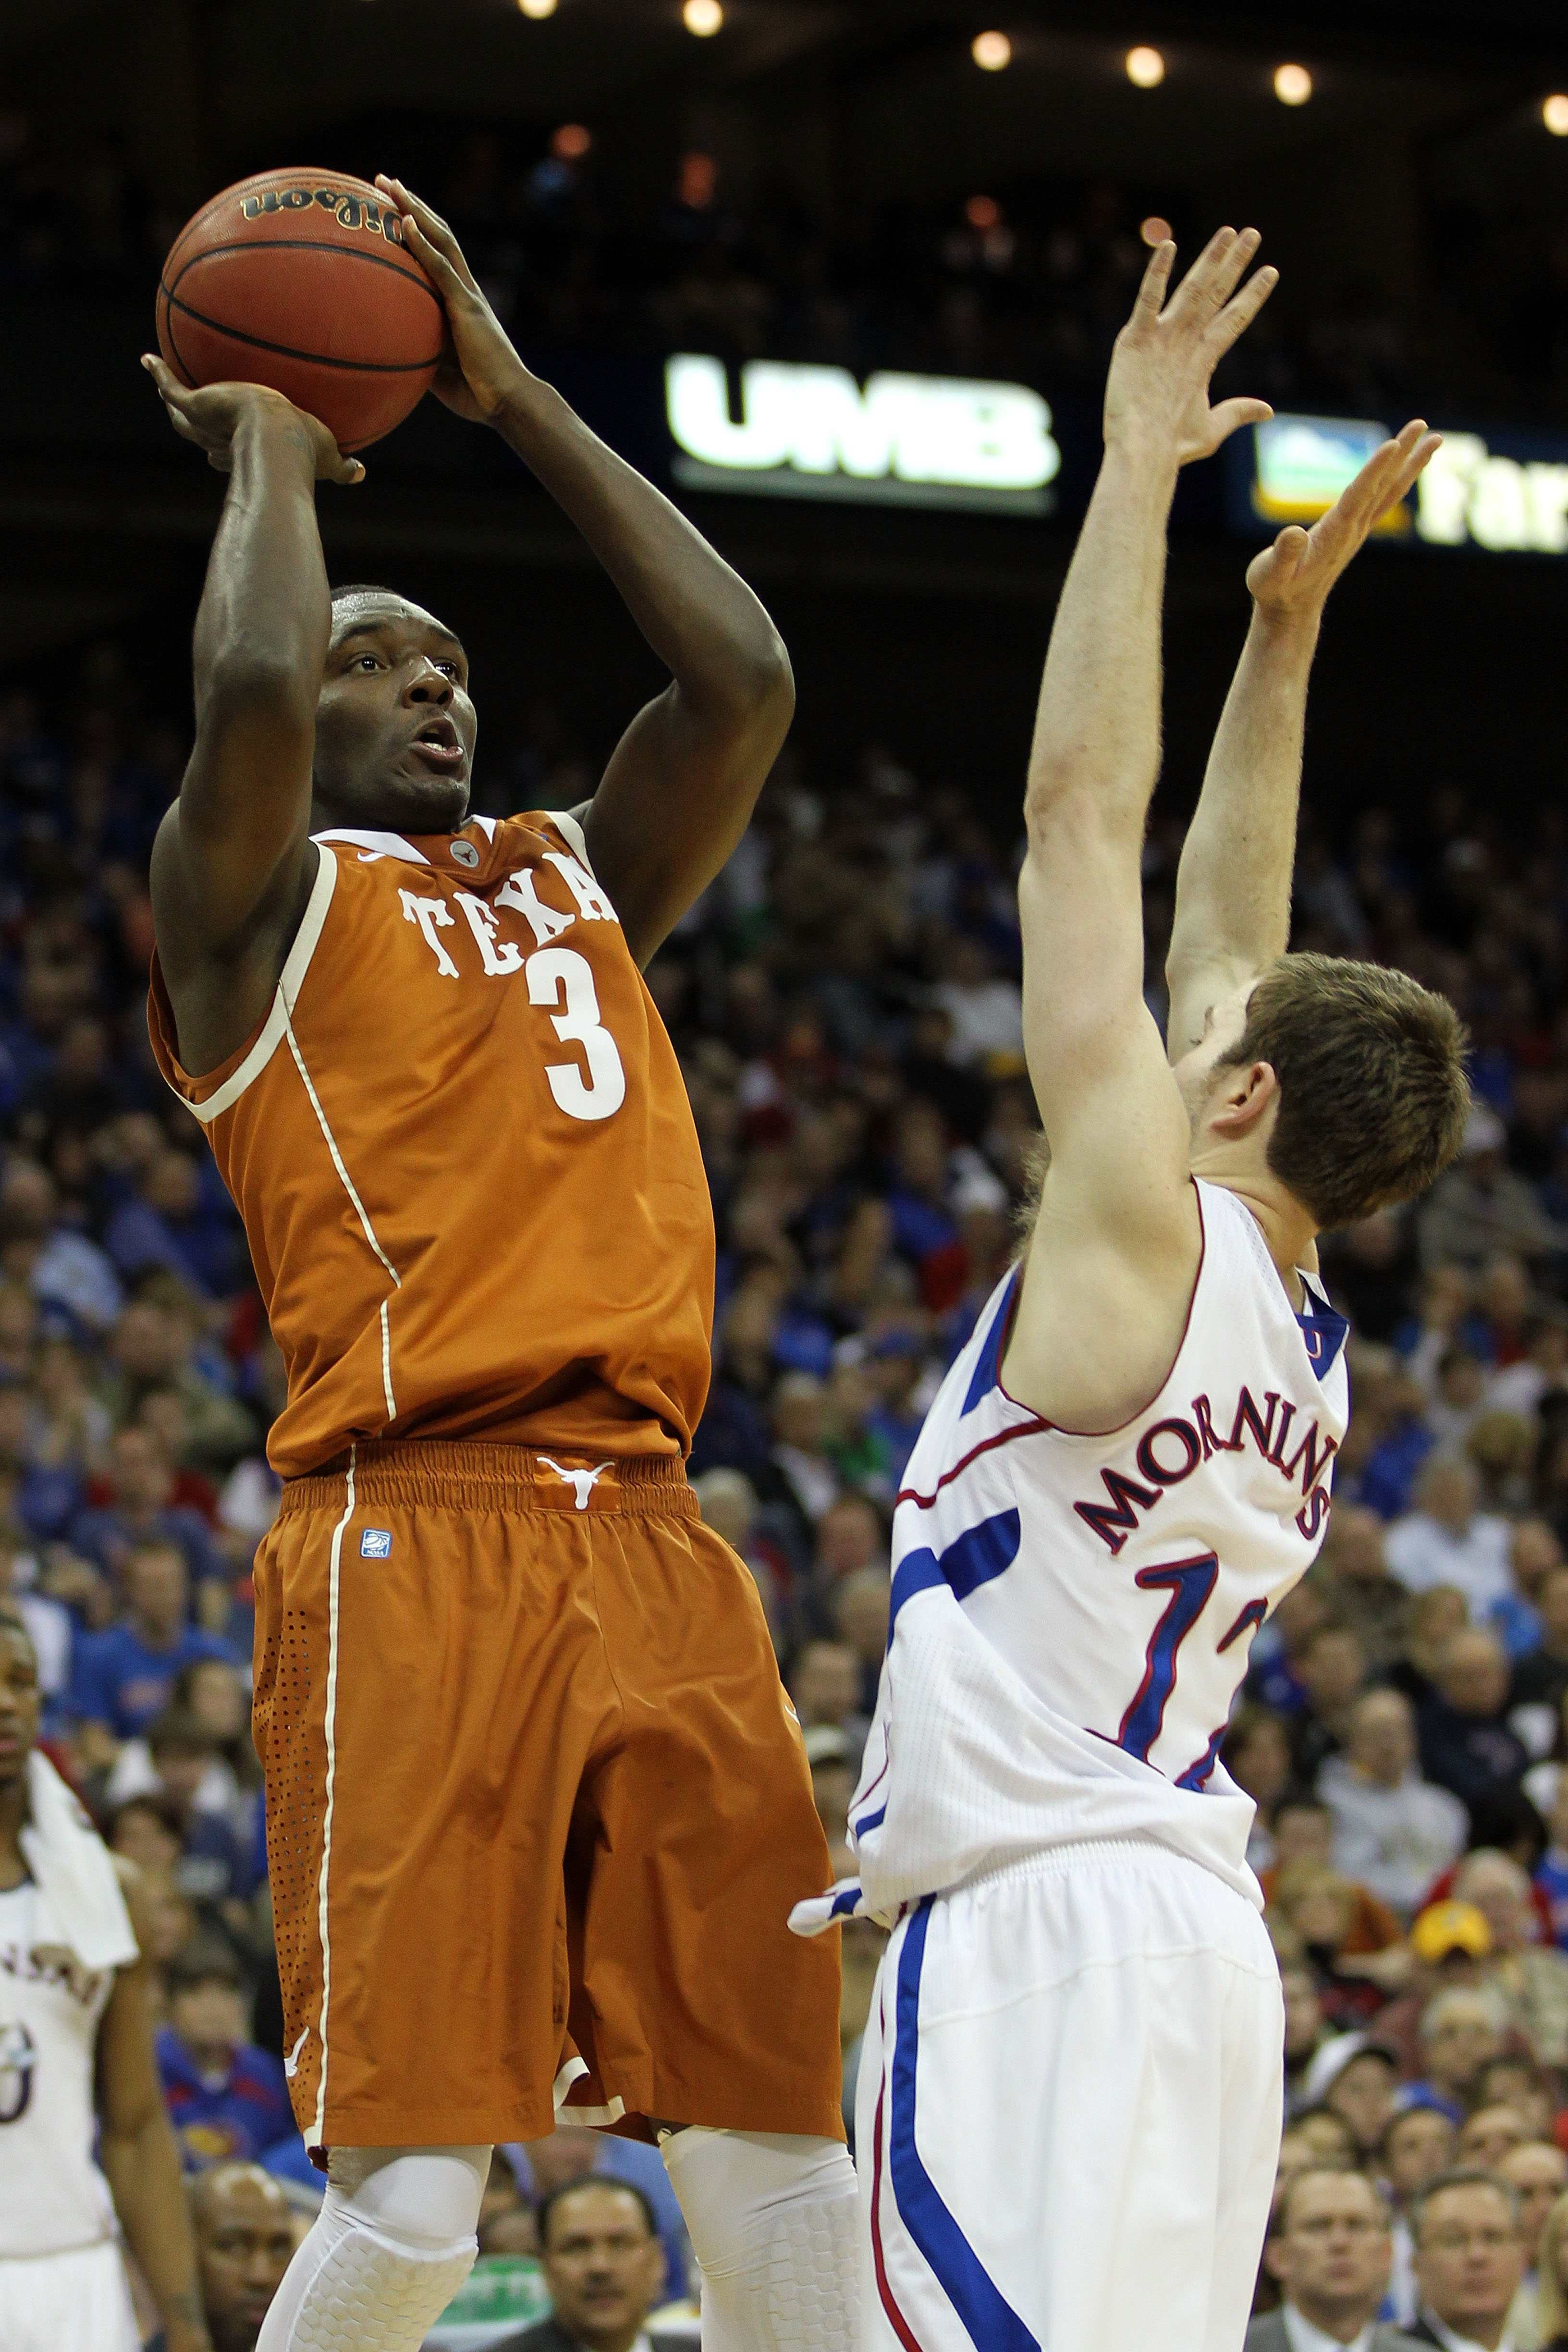 KANSAS CITY, MO - MARCH 12:  Jordan Hamilton #3 of the Texas Longhorns goes up for a shot against Brady Morningstar #12 of the Kansas Jayhawks during the 2011 Phillips 66 Big 12 Men's Basketball Tournament championship game at Sprint Center on March 12, 2